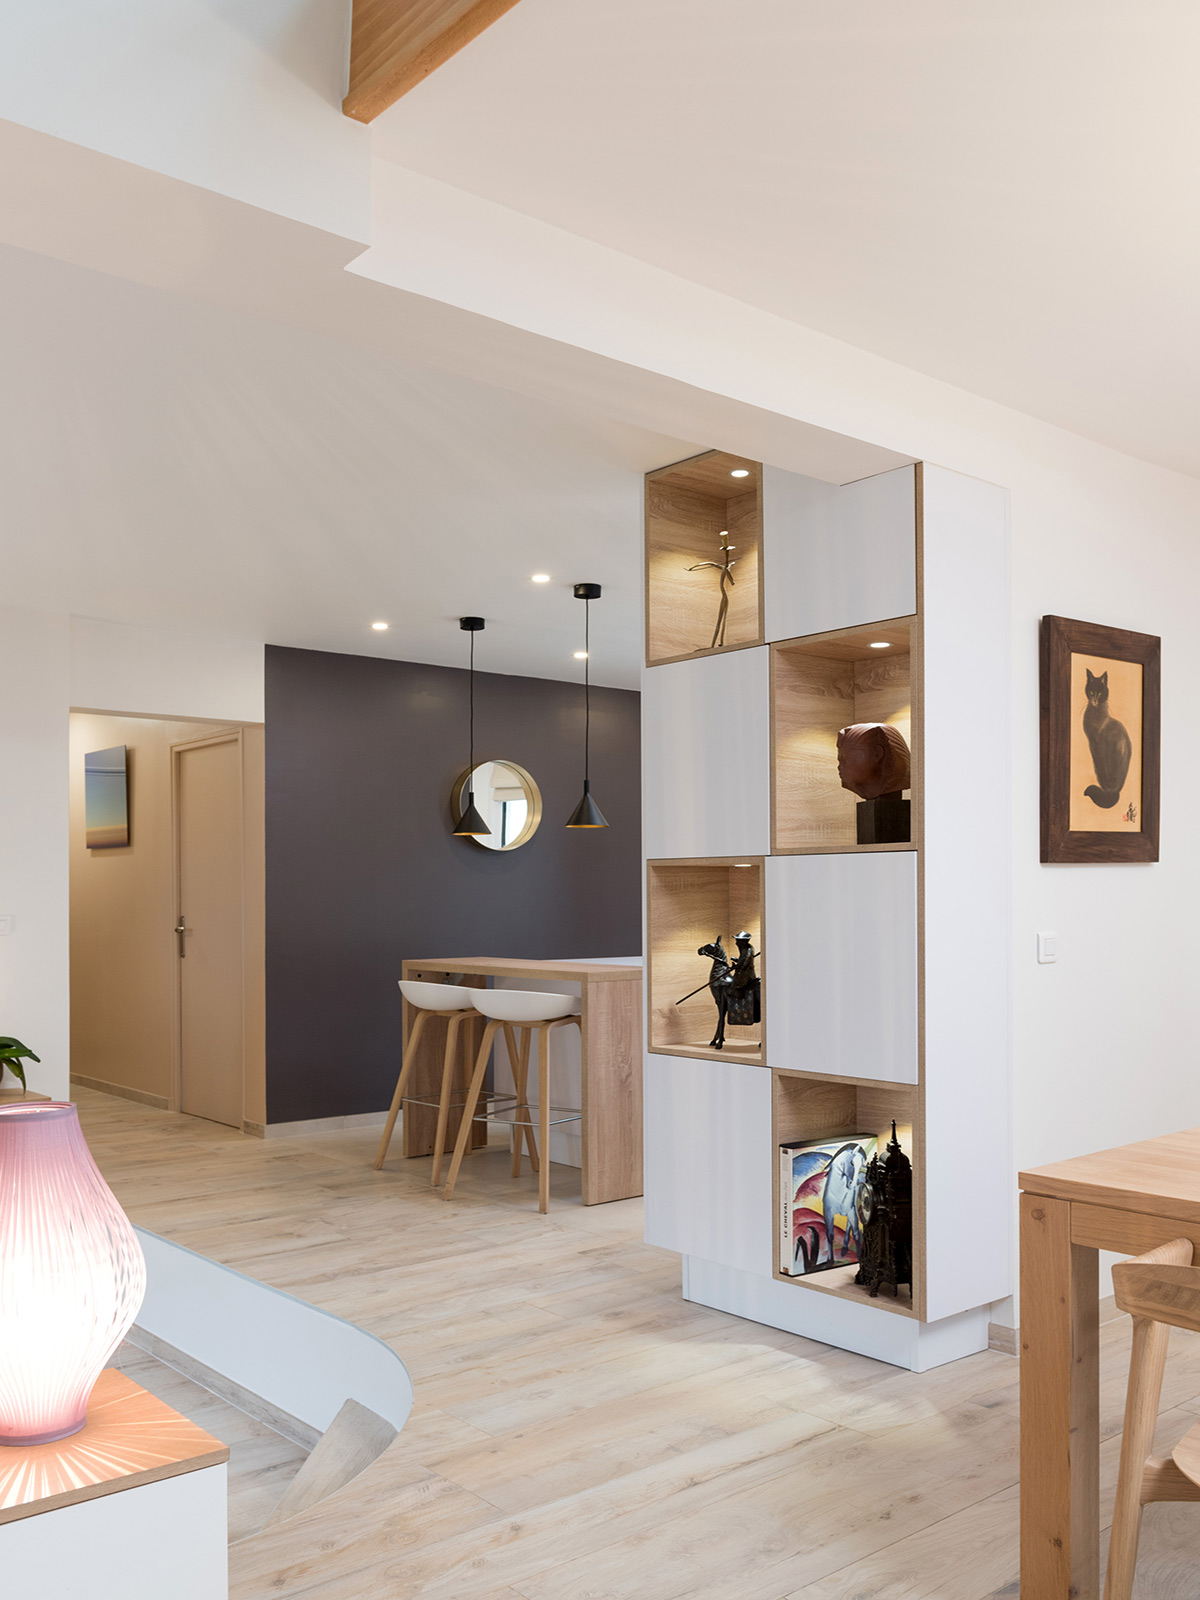 renovation-maison-architecture-decoration-interieur-oise-sur-mesure-interior-design-agence-atmospheres-design-patricia-coignard-mobilier-sur-mesure-bois-idee-deco-amenagement-sur-mesure-petite-surface-home-decor-cuisine-ouverte-bar-bibliotheque